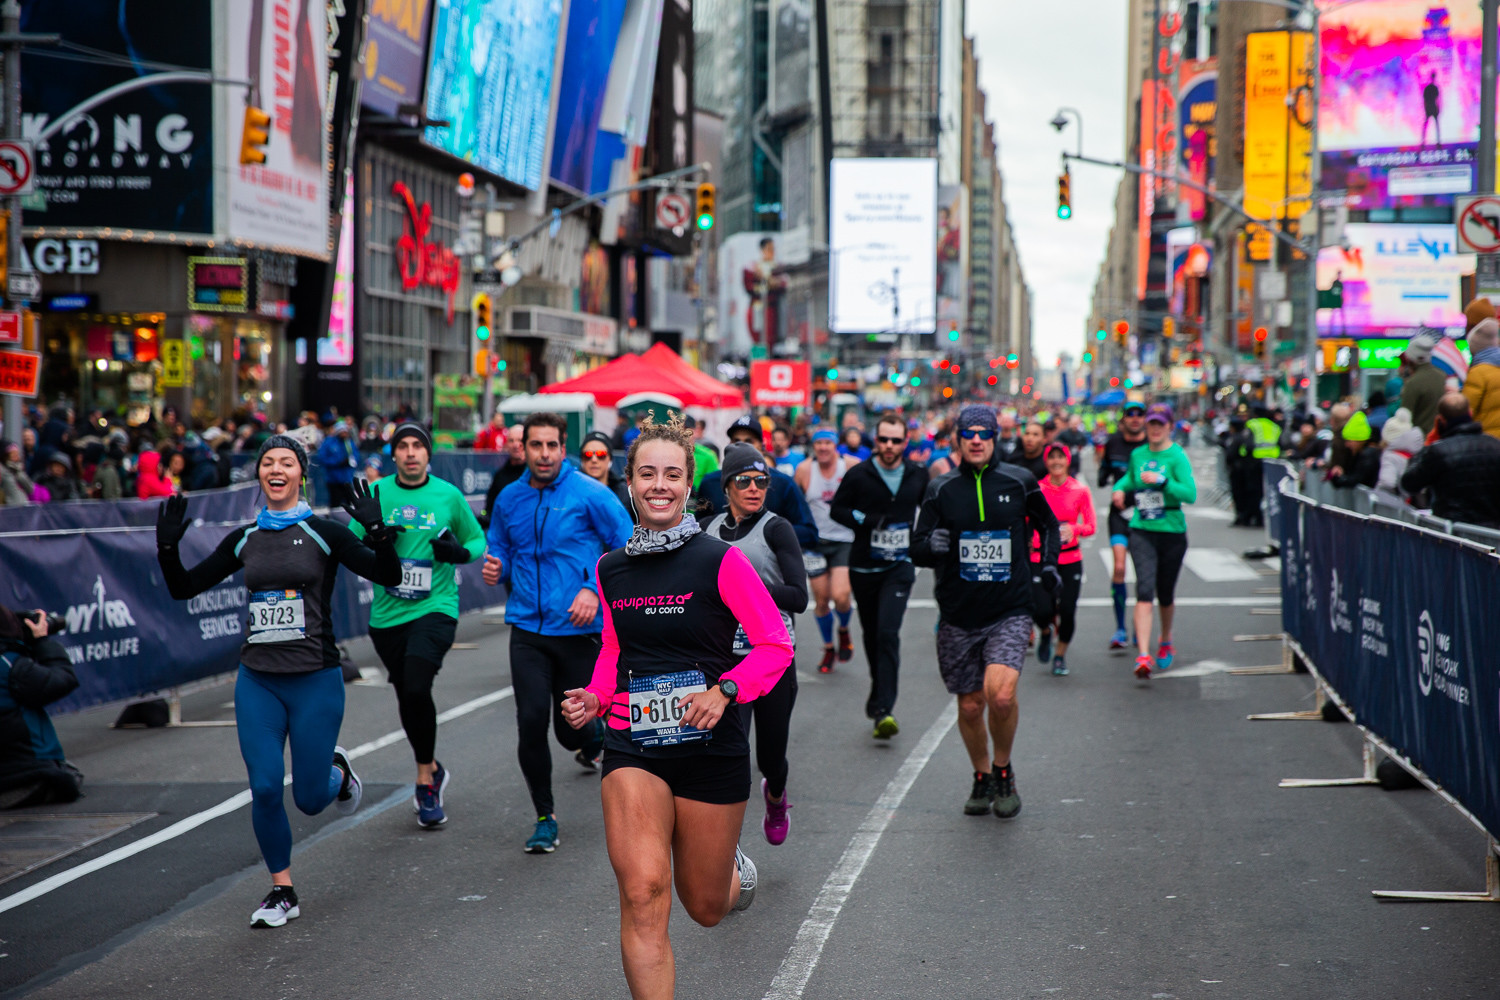 United Airlines New York City Half-Marathon has been cancelled due to the Coronavirus